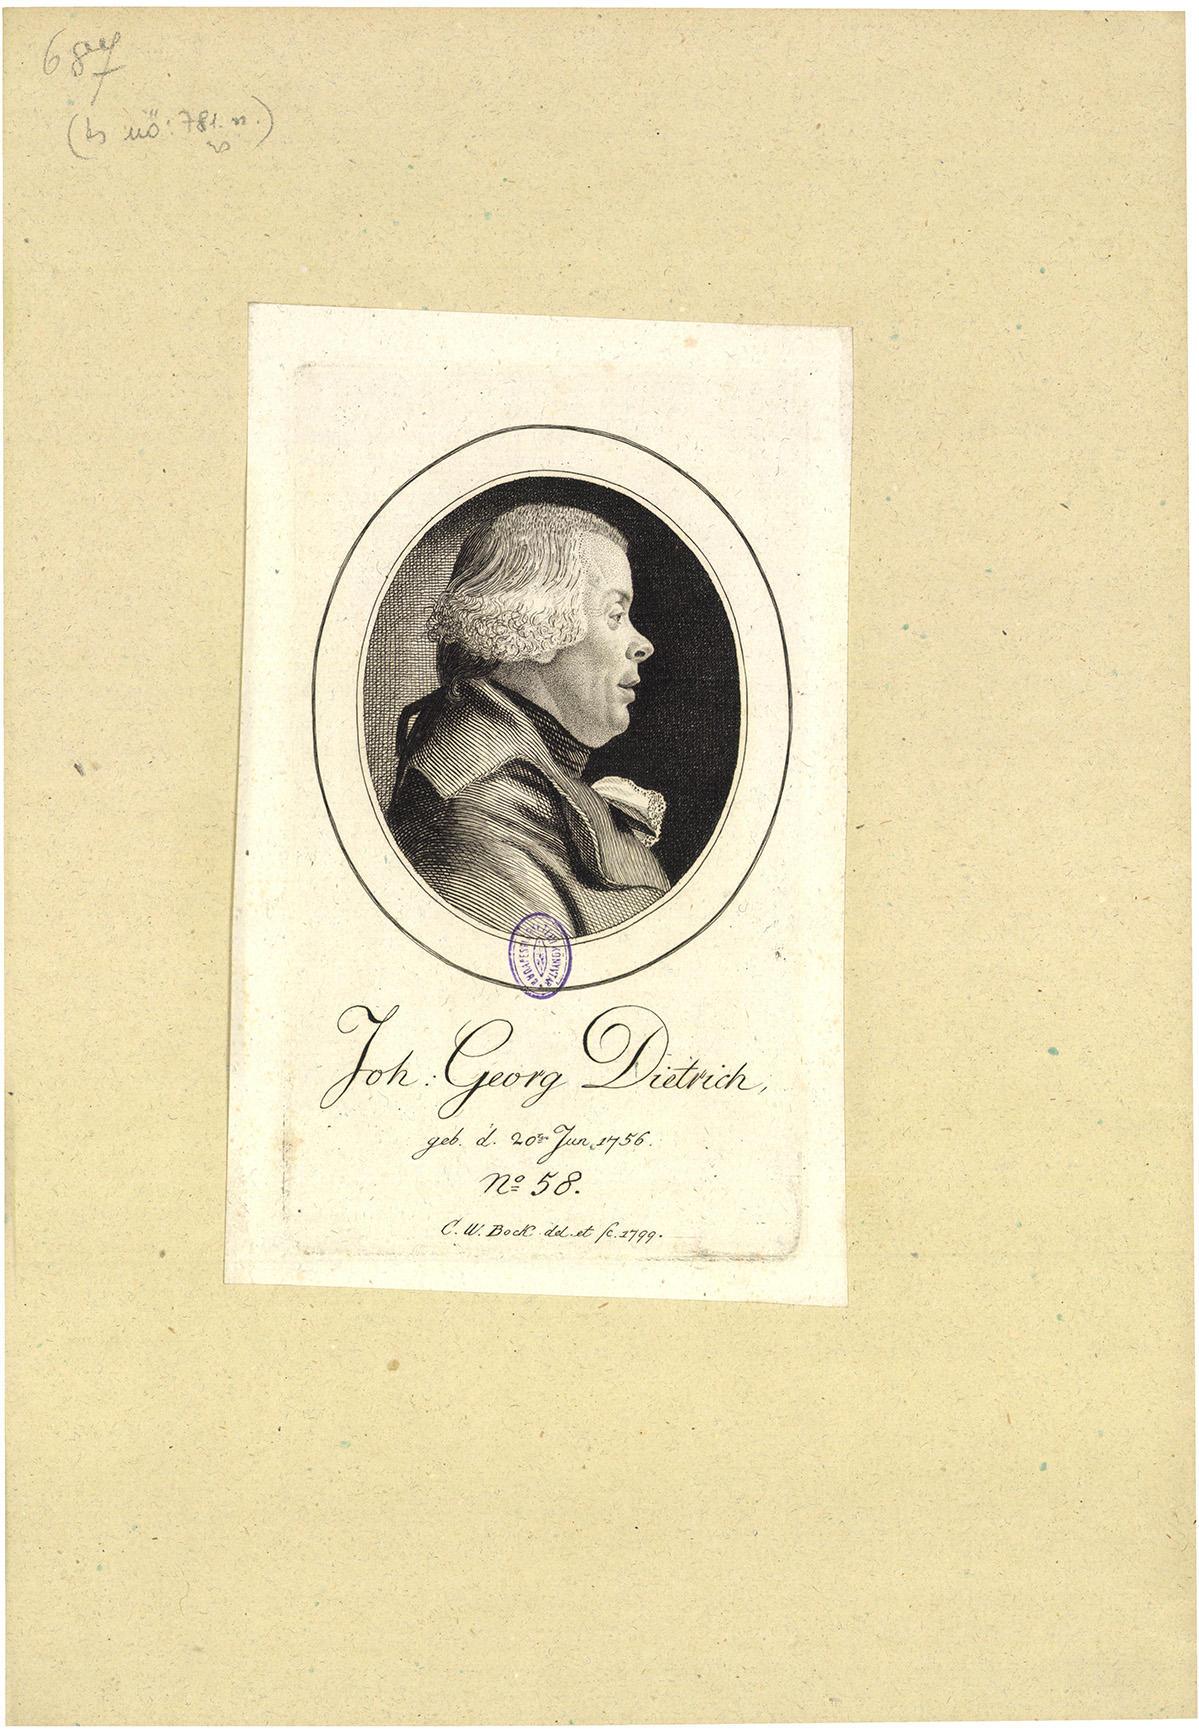 Joh. Georg Dietrich geb. d. 20ten Jun. 1756.